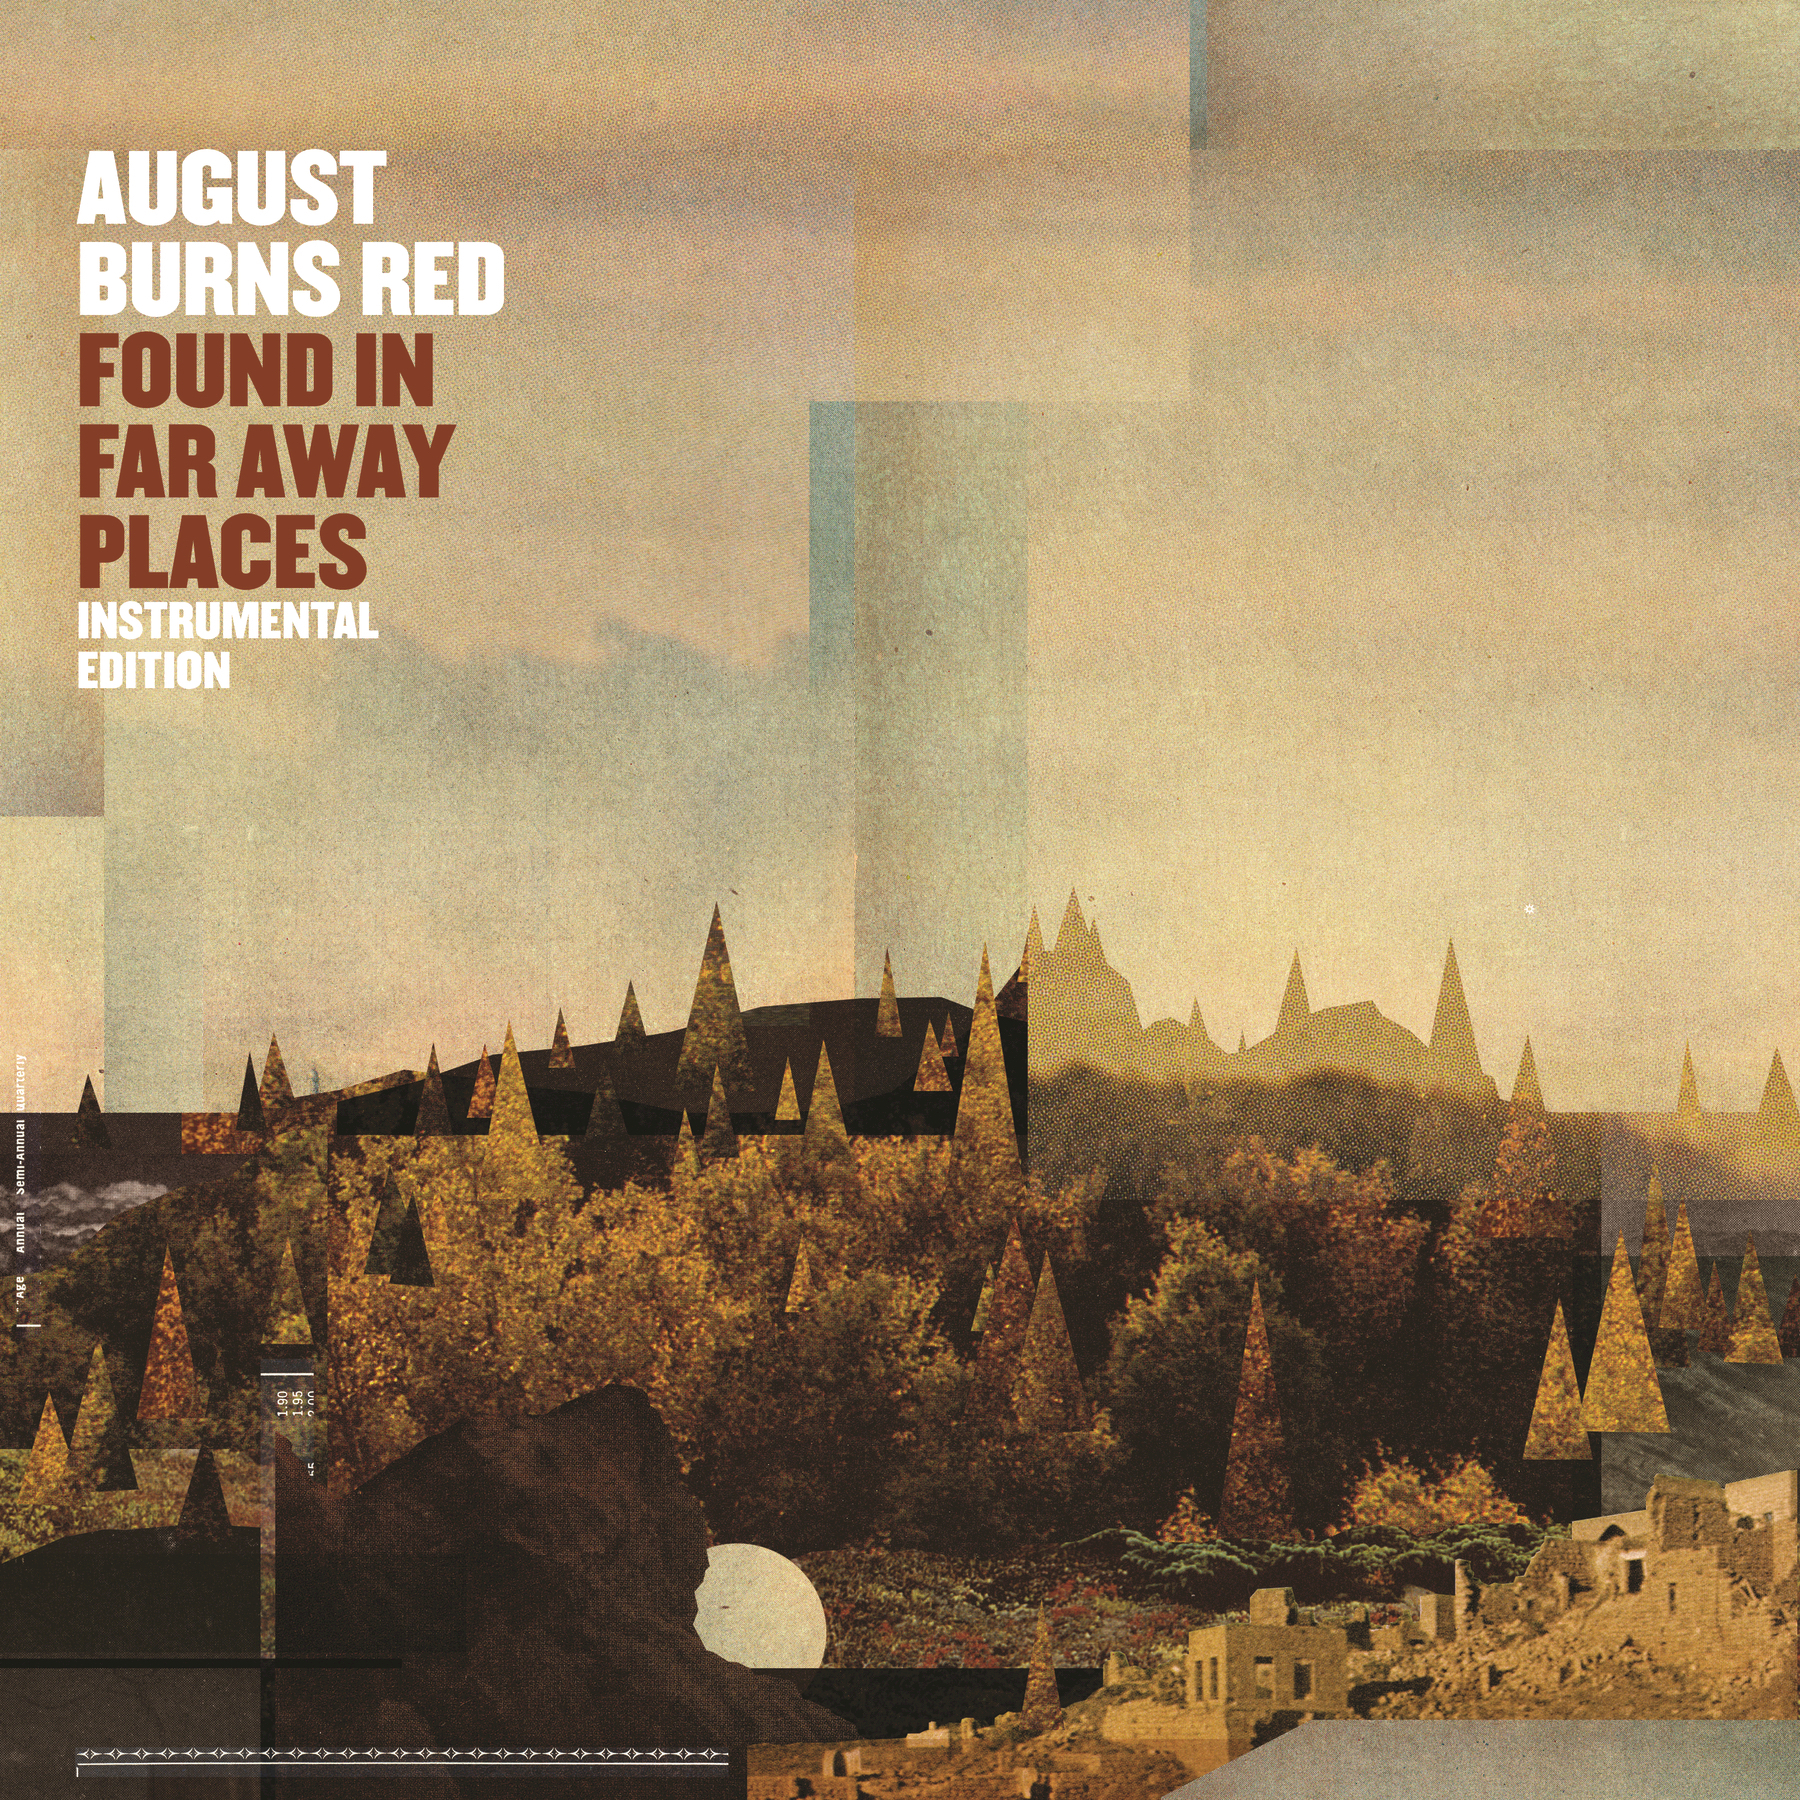 August Burns Red - Found in Far Away Places (Instrumental Edition) (2016)